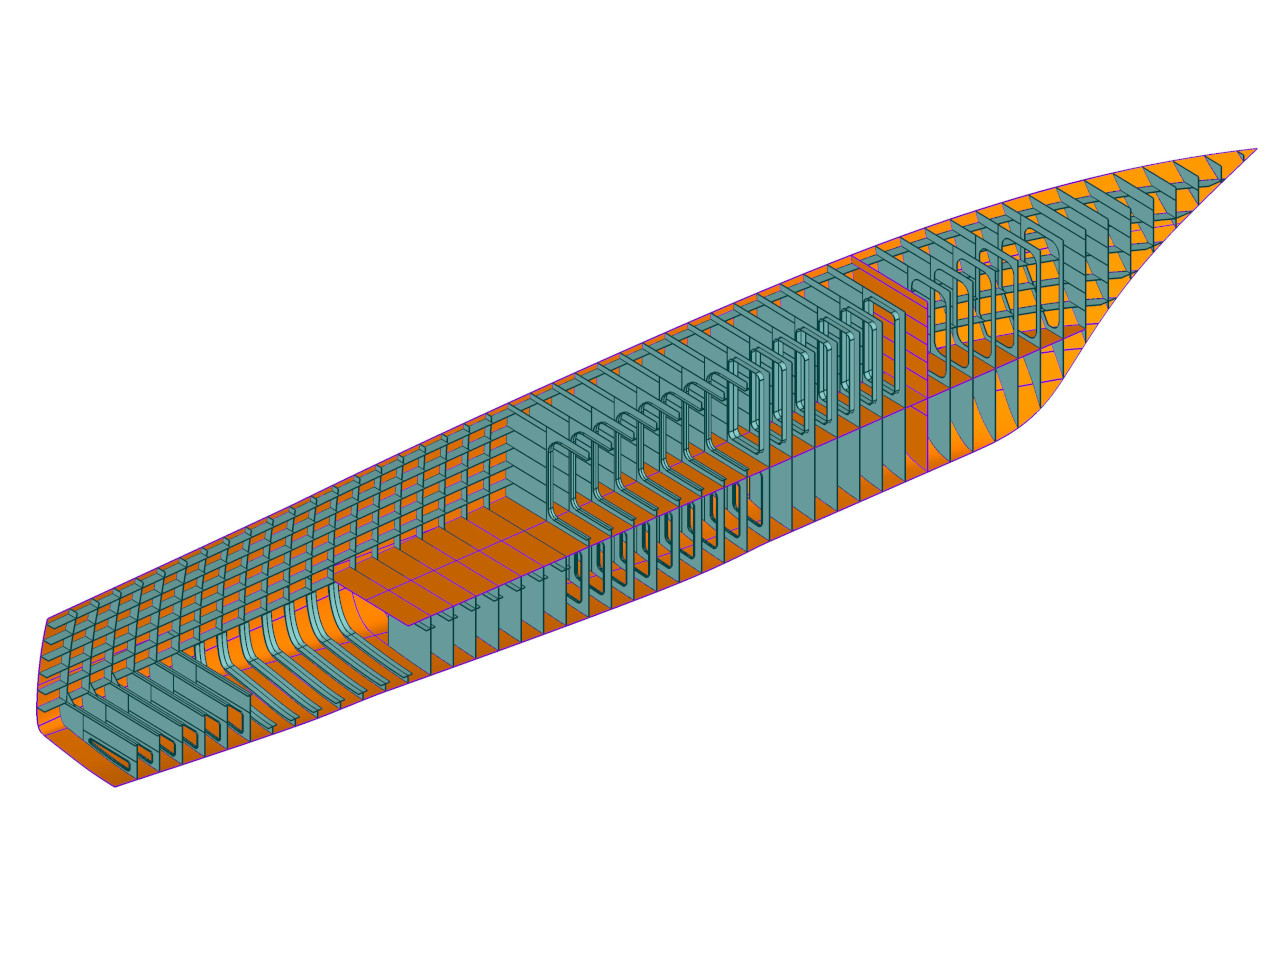 Benefiting from finite element analysis software enablers